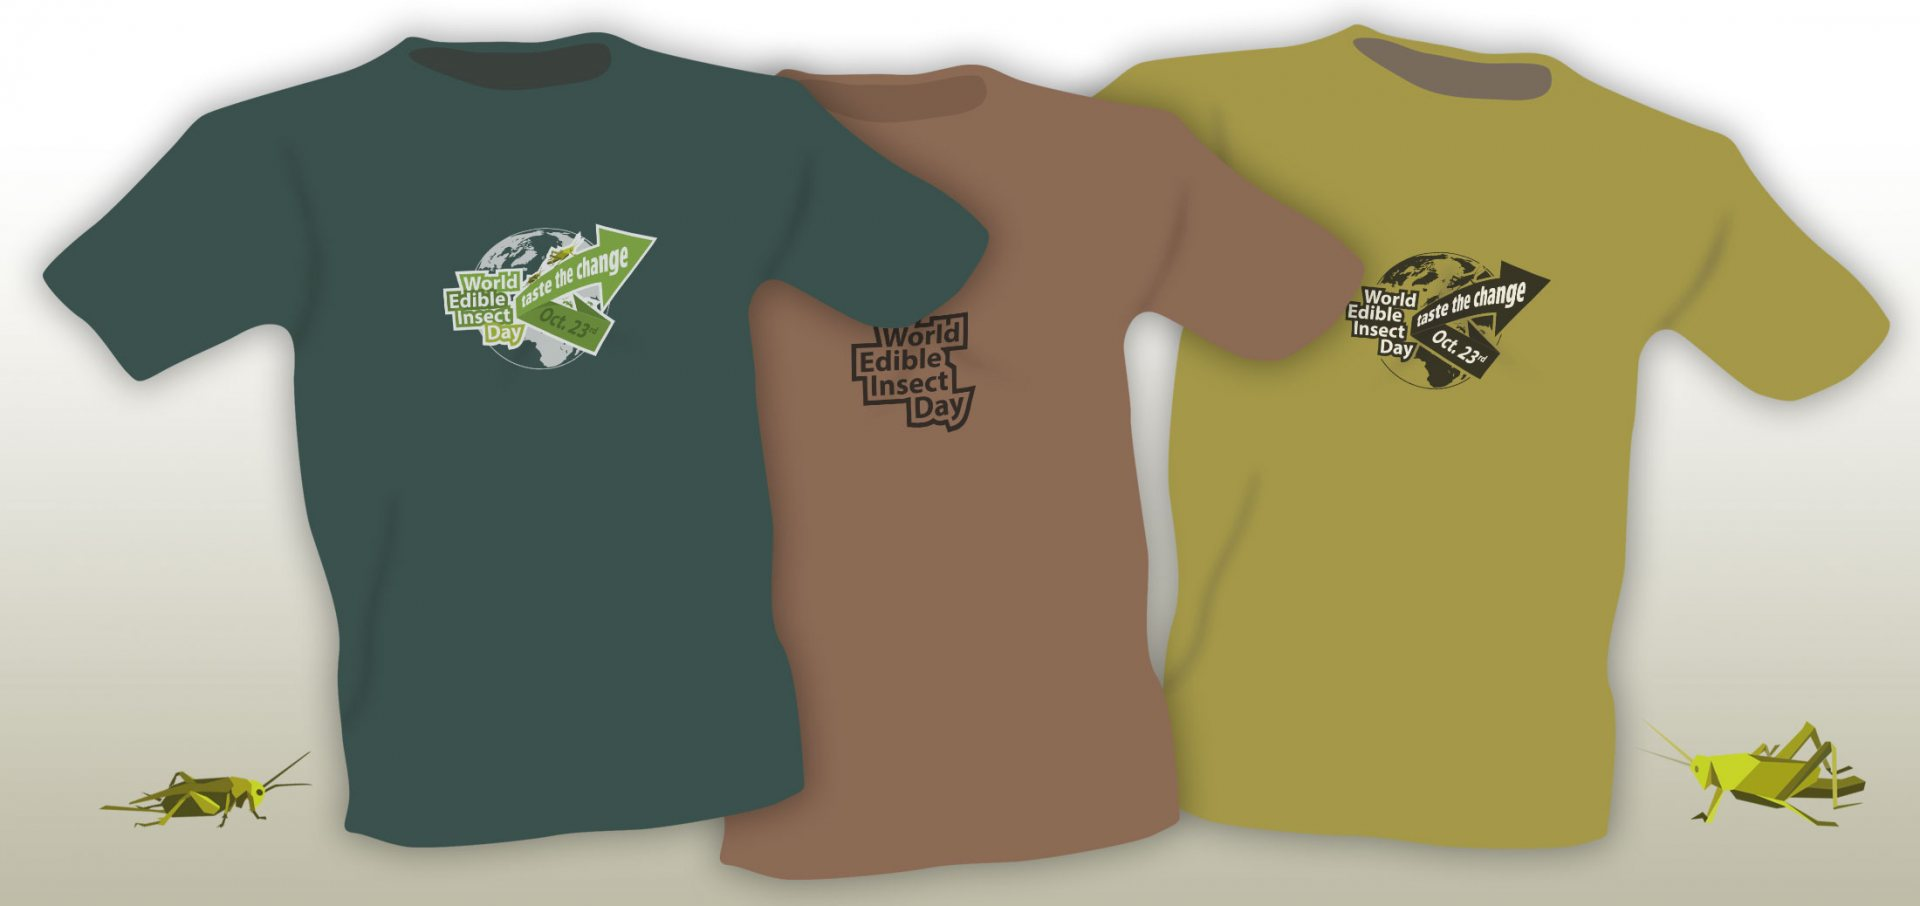 World Edible Insect Day Logo Varianten tshirts